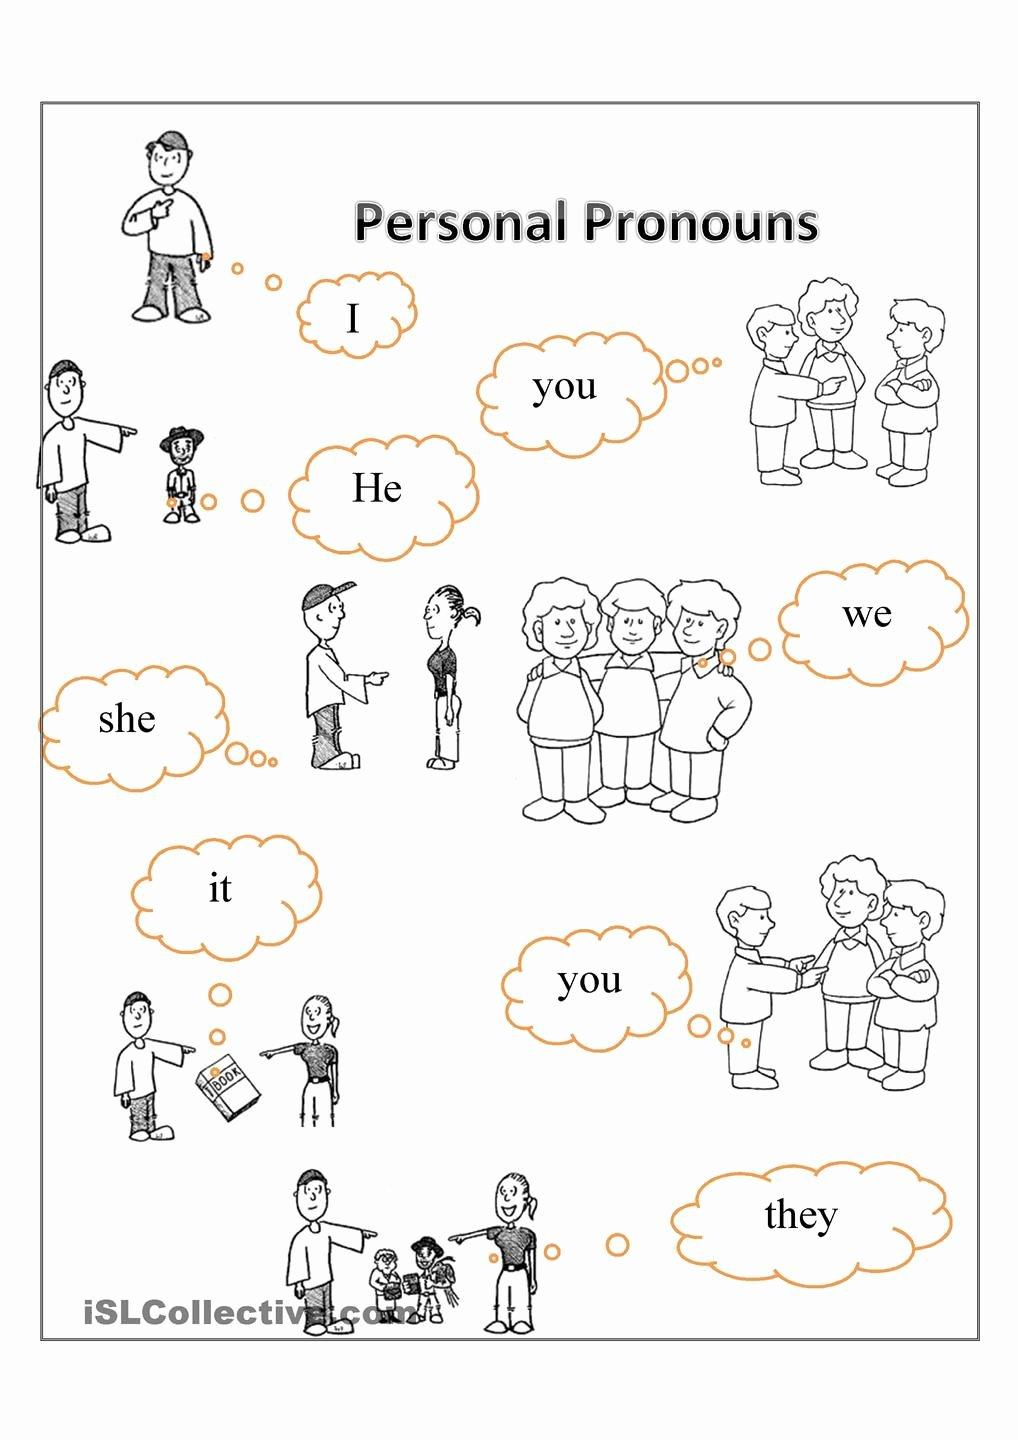 Personal Pronouns Worksheets for Preschoolers Awesome Personal Pronouns